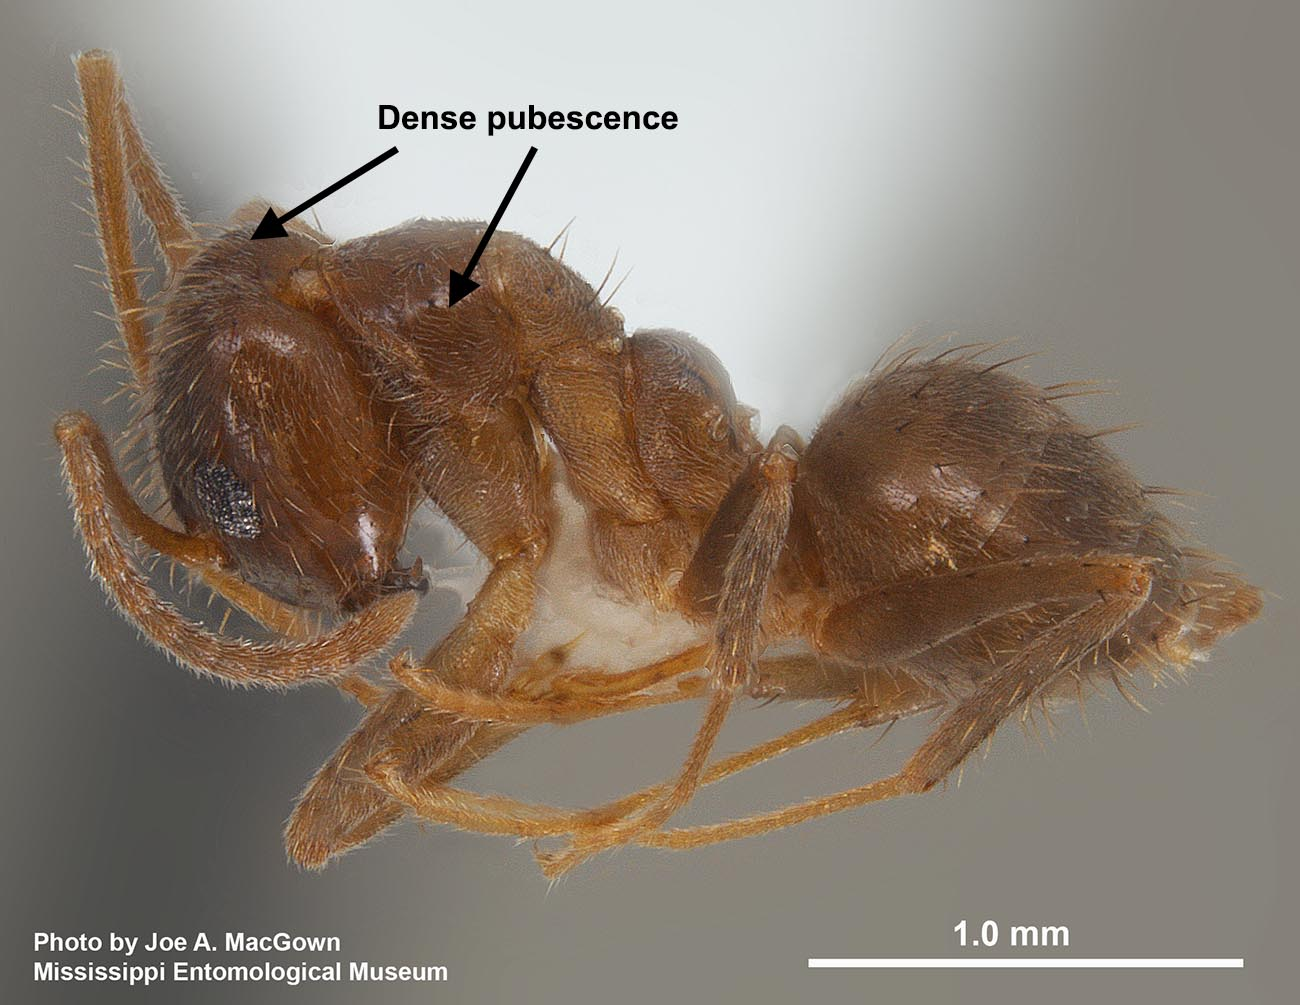 Nylanderia fulva worker from Georgia, photo by Joe A. MacGown